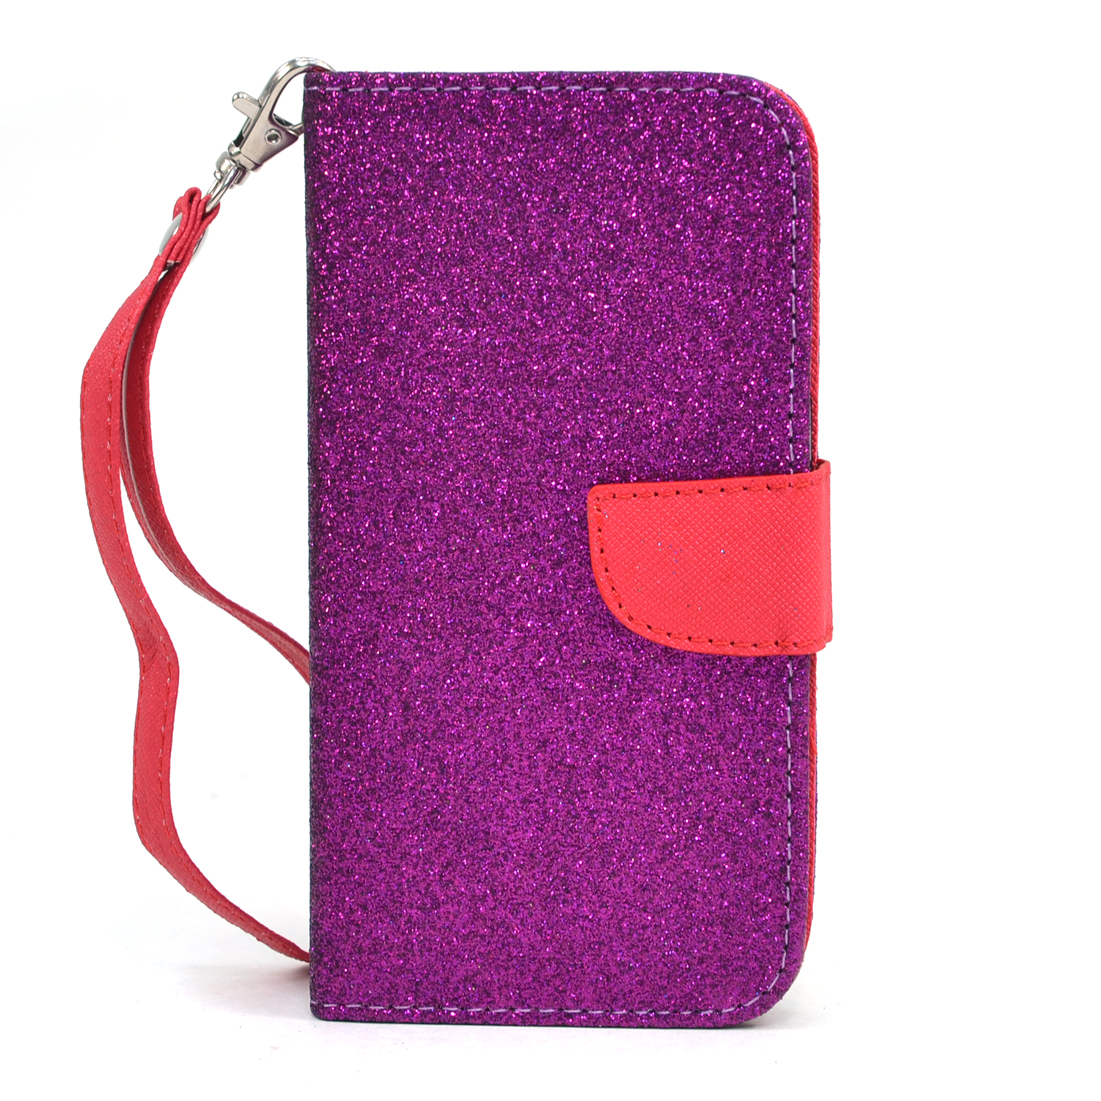 Dasein® Metallic Glitter Cell Phone Case With Wrist Strap for Samsung Galaxy S4